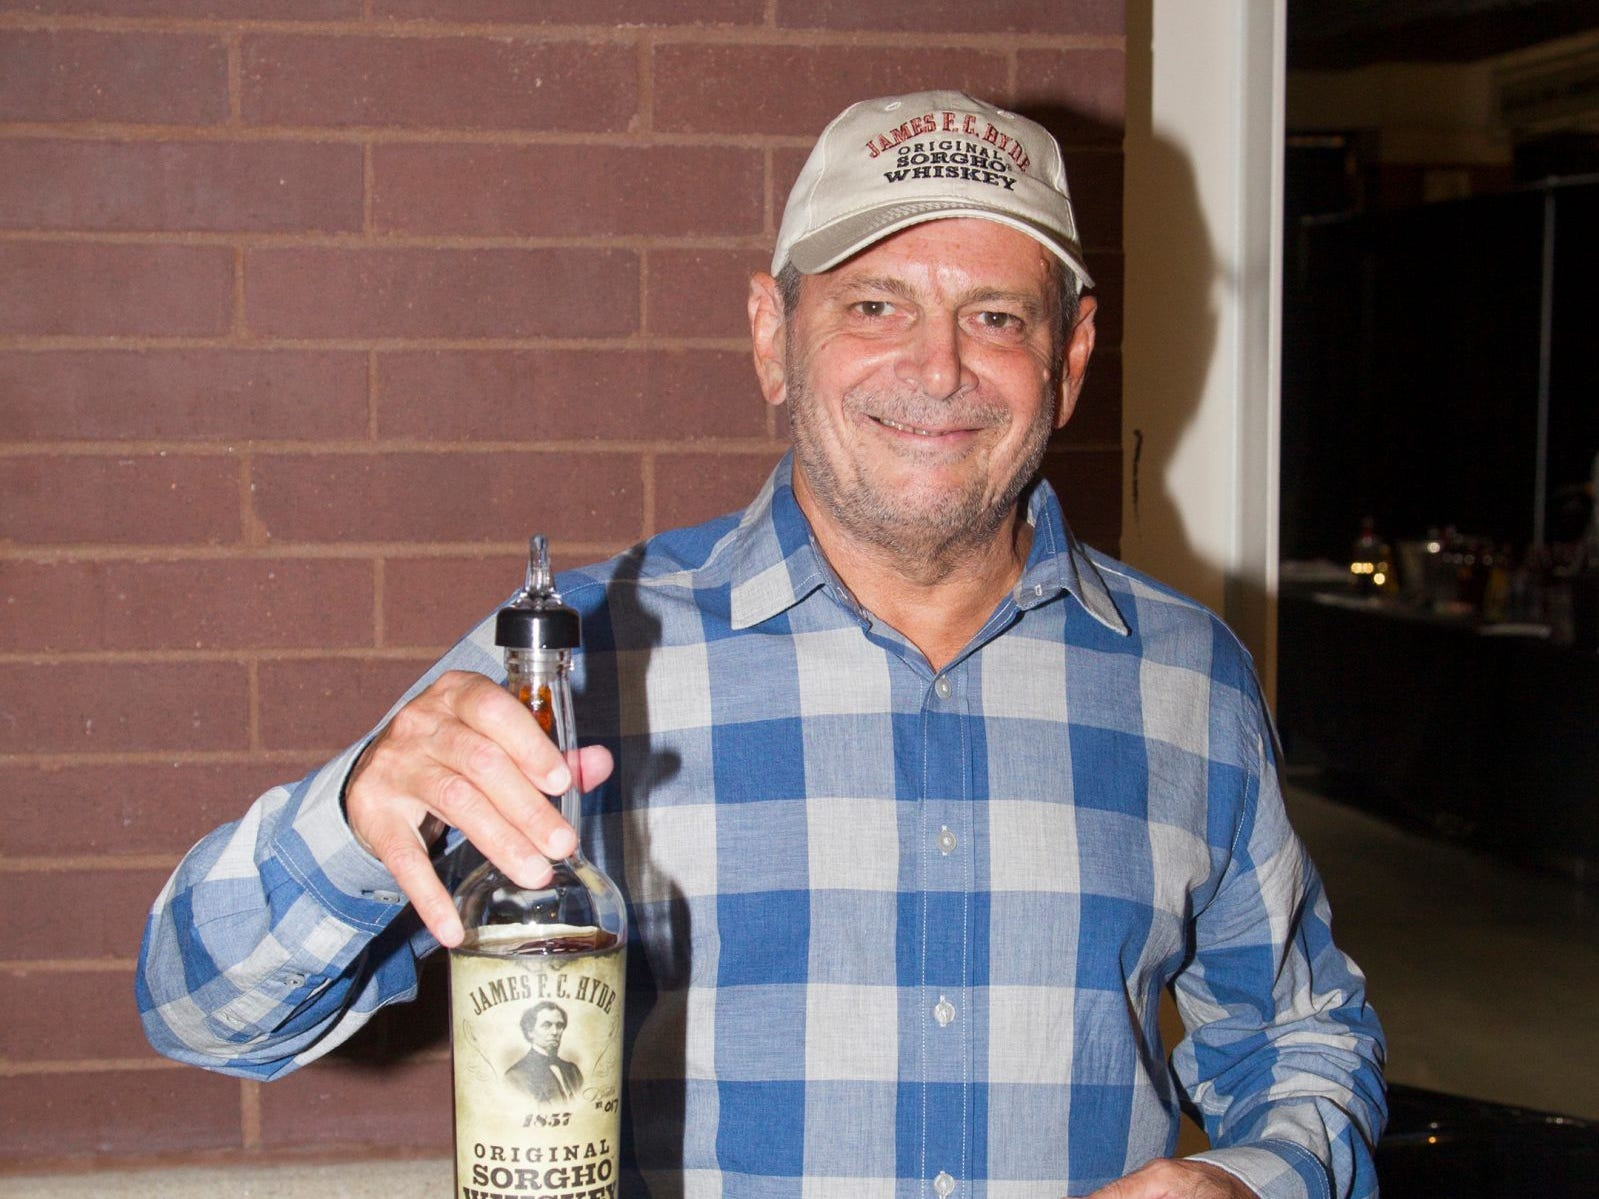 Steve Smith. Jersey City Craft Distillery Fest at the Harborside Atrium featured more than 100 styles of spirits. Guests had the chance to taste craft-distilled spirits from moonshine, rum, cognac, whiskey, vodka, gin, tequila and more. 09/08/2018